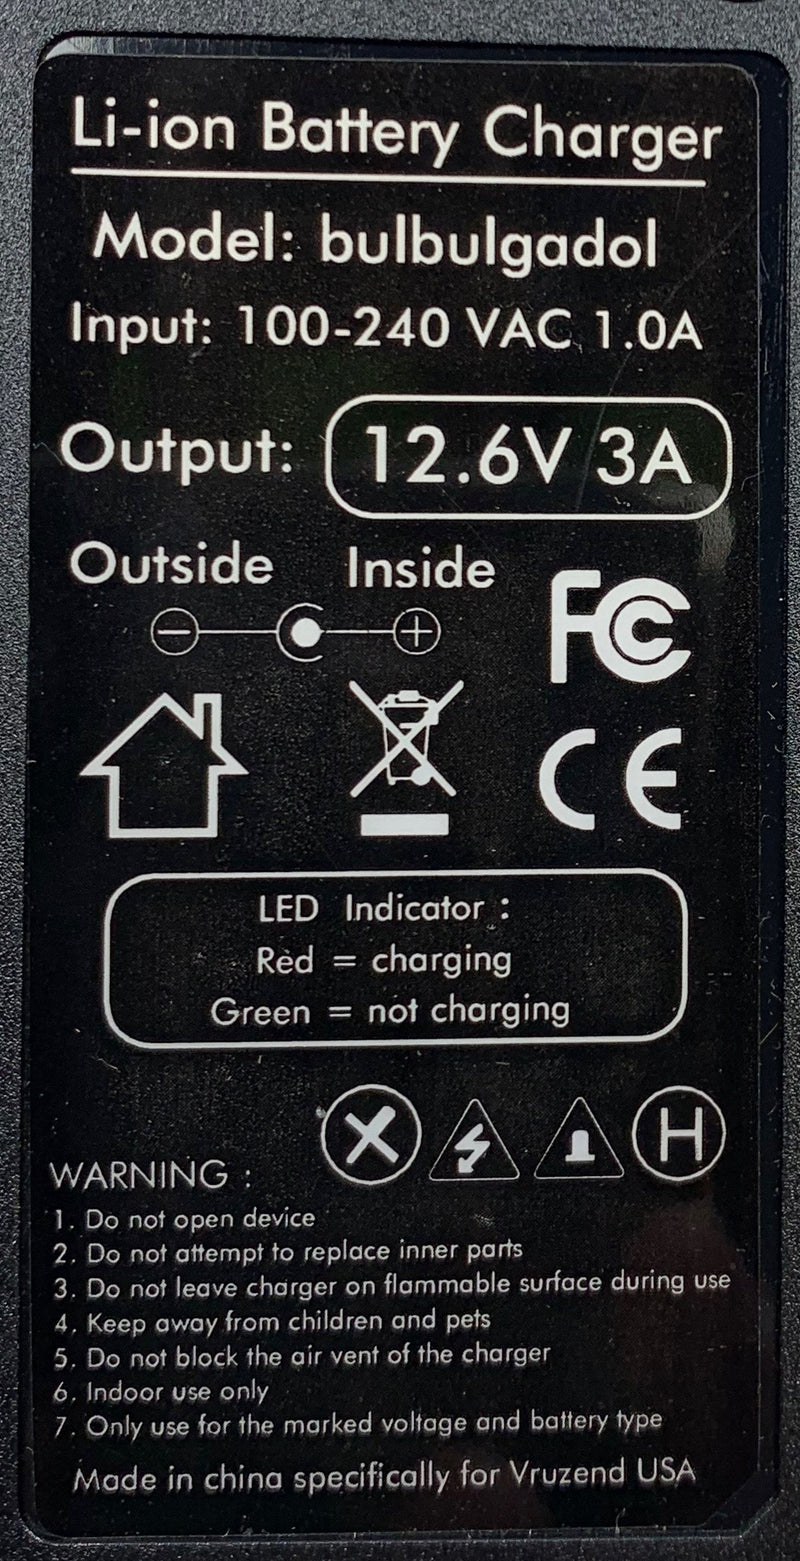 11.1V (12.6V) 3s Lithium-ion battery charger (5 Amps) EU plug